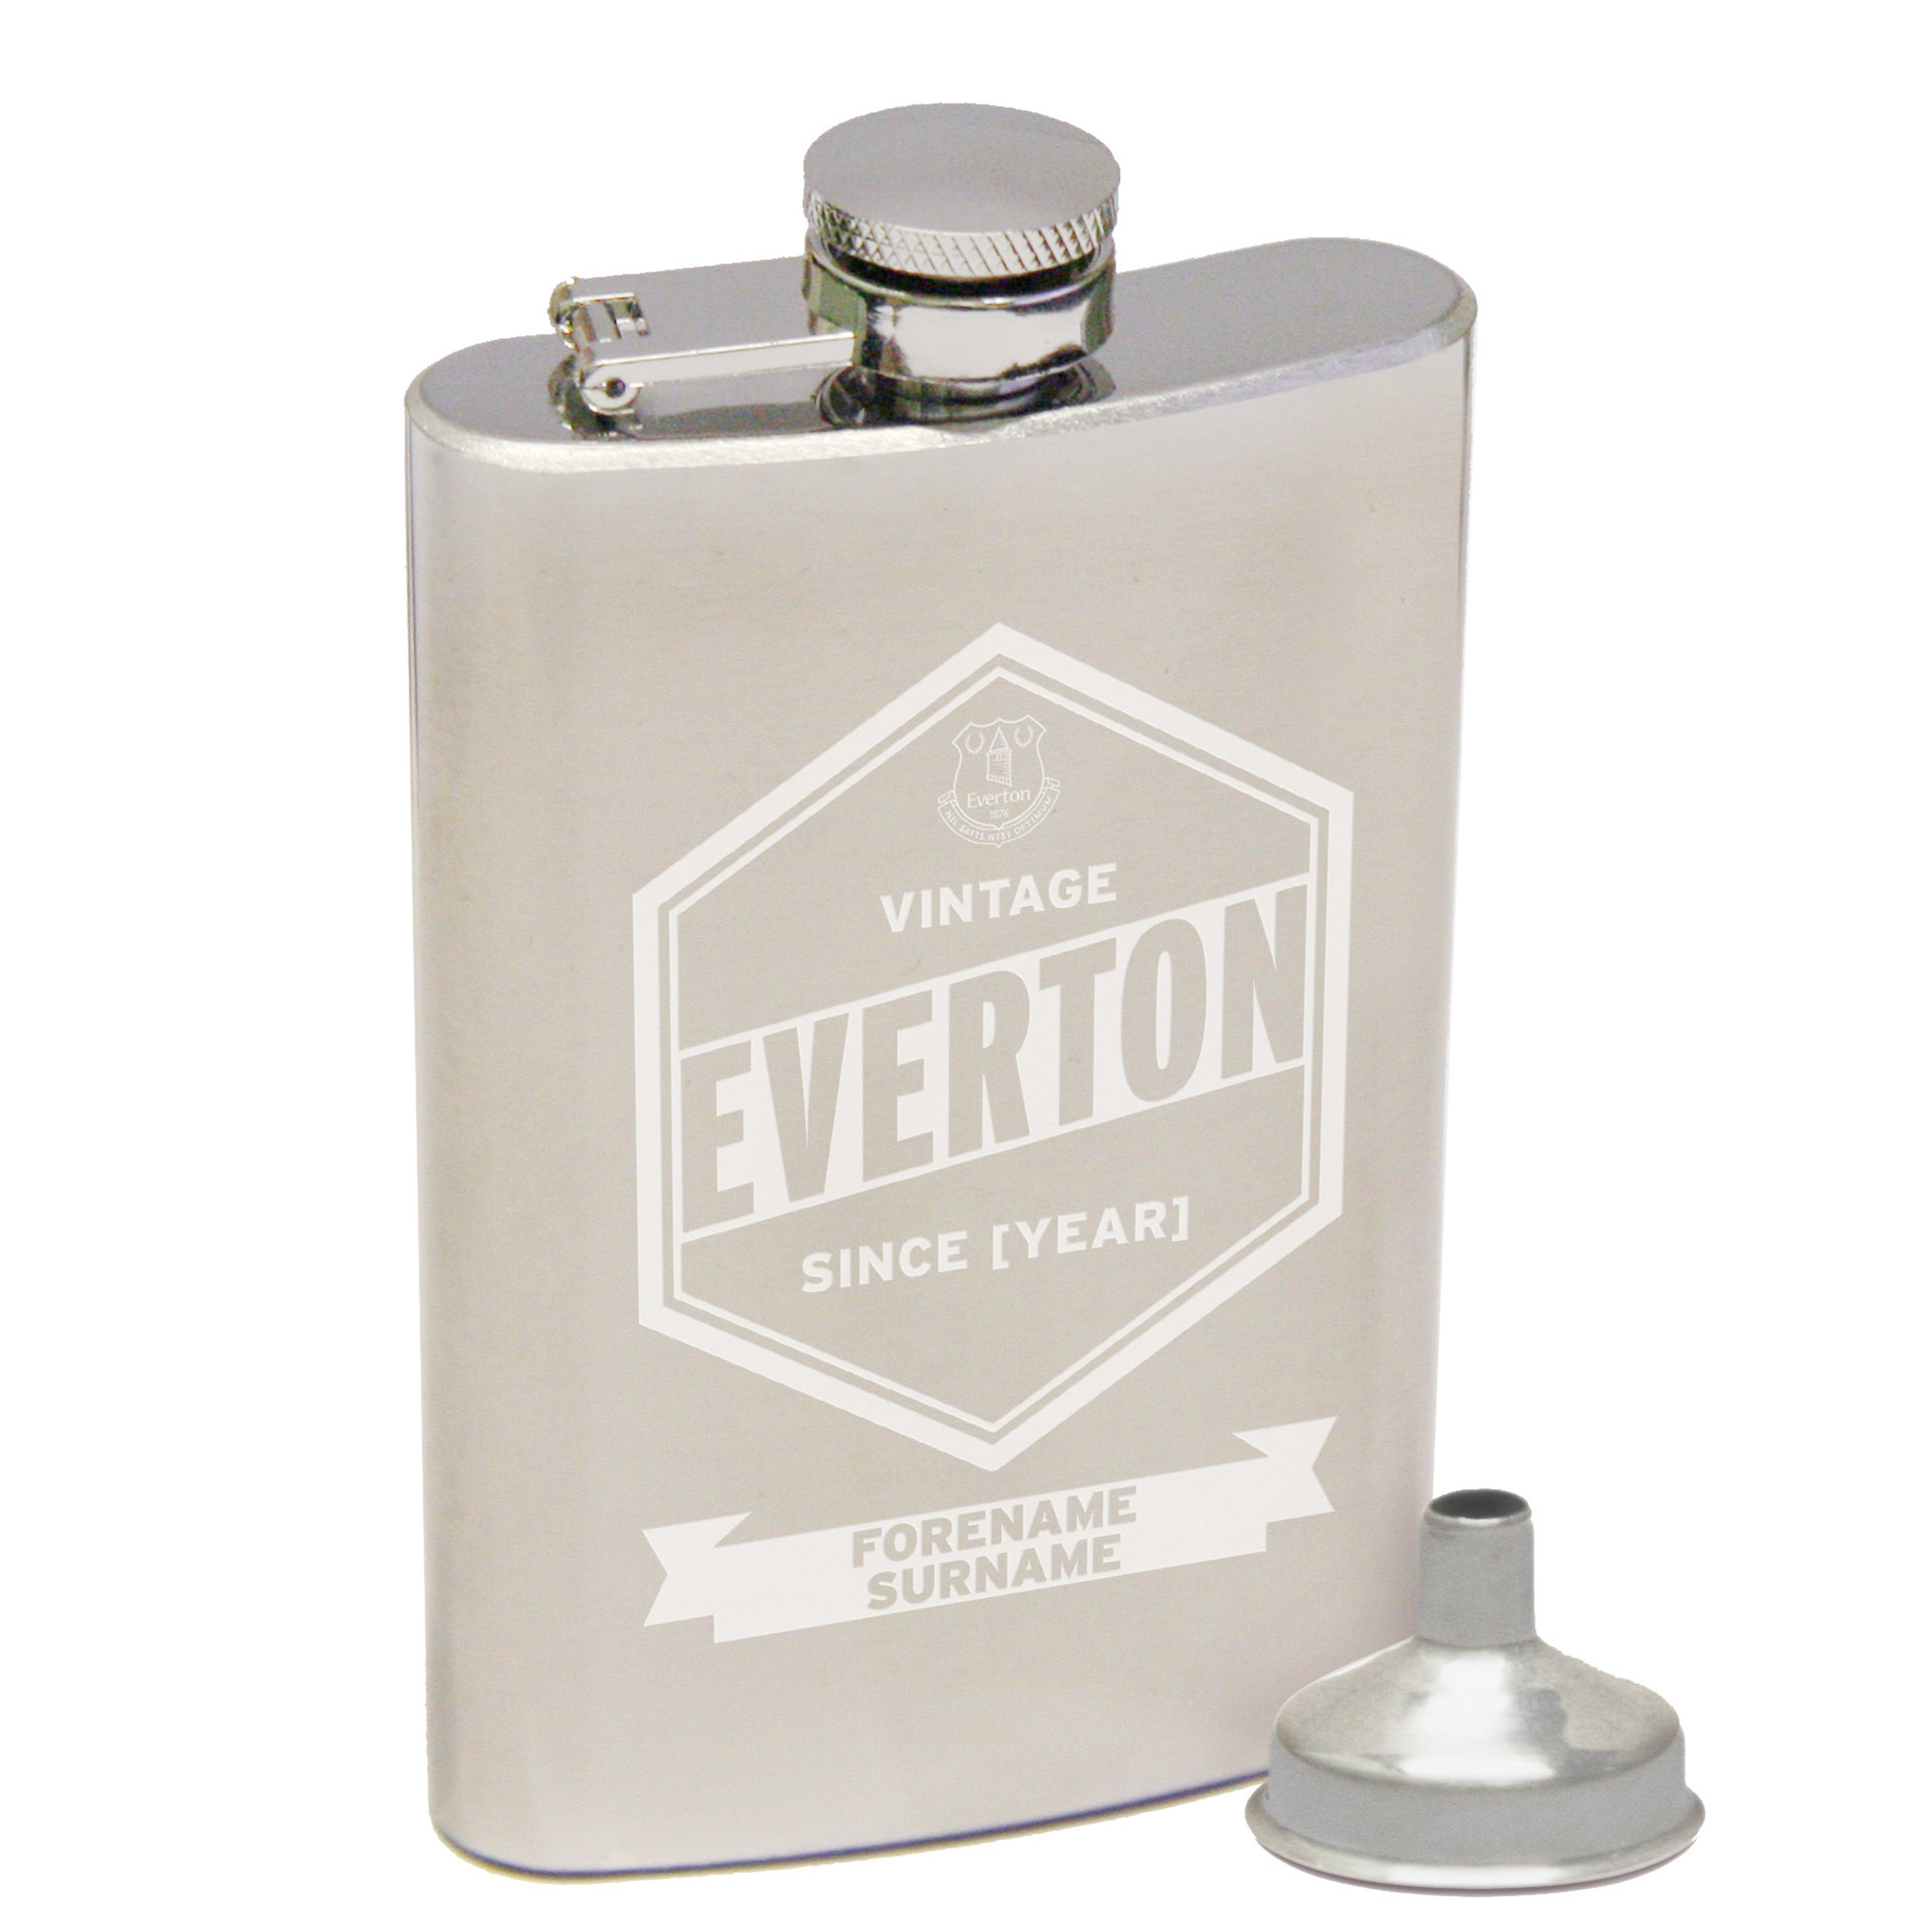 Everton Personalised Vintage Hip Flask 6oz